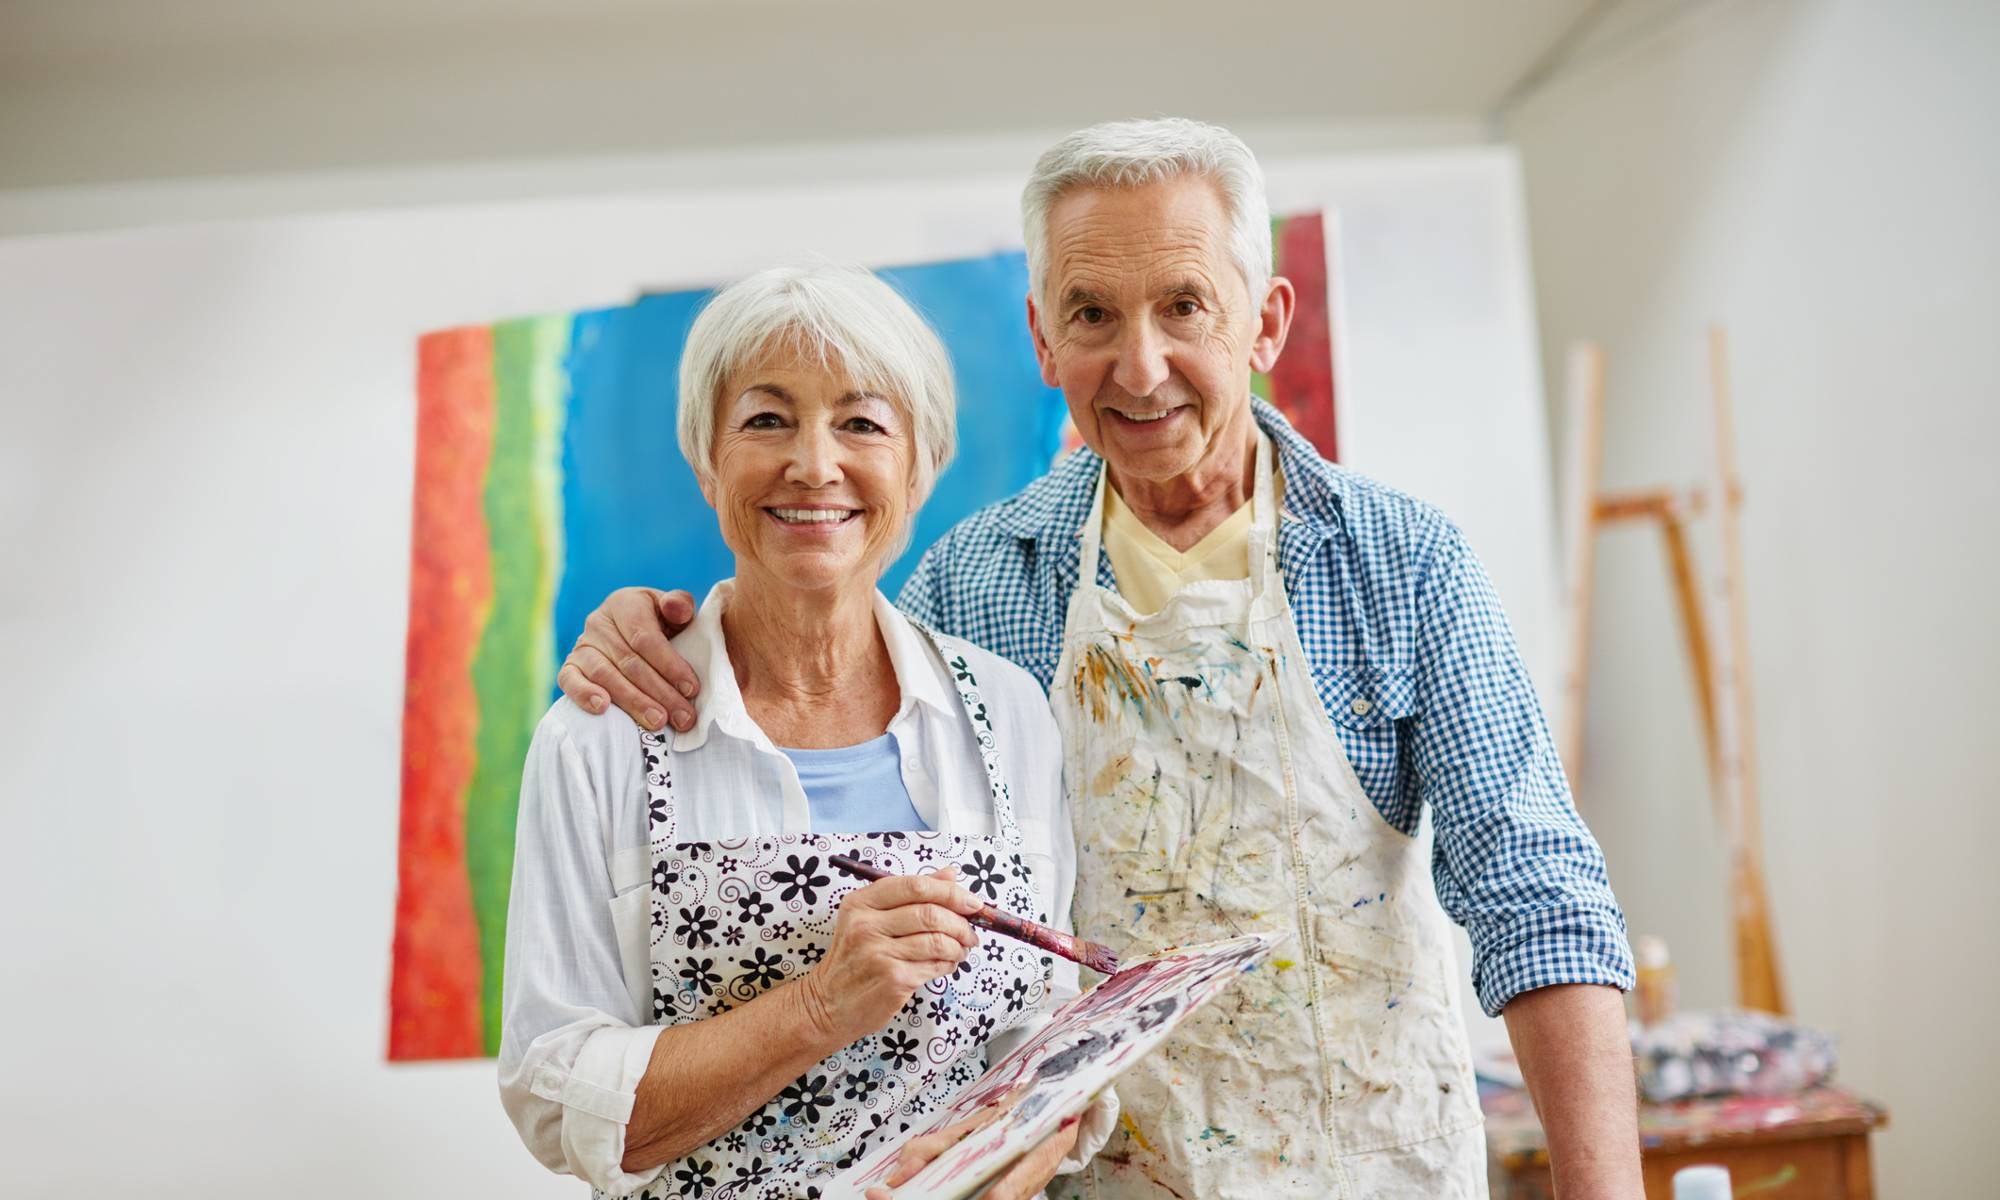 Residents can participate in arts and crafts, exercise programs, music activities or dancing at NewForest Estates